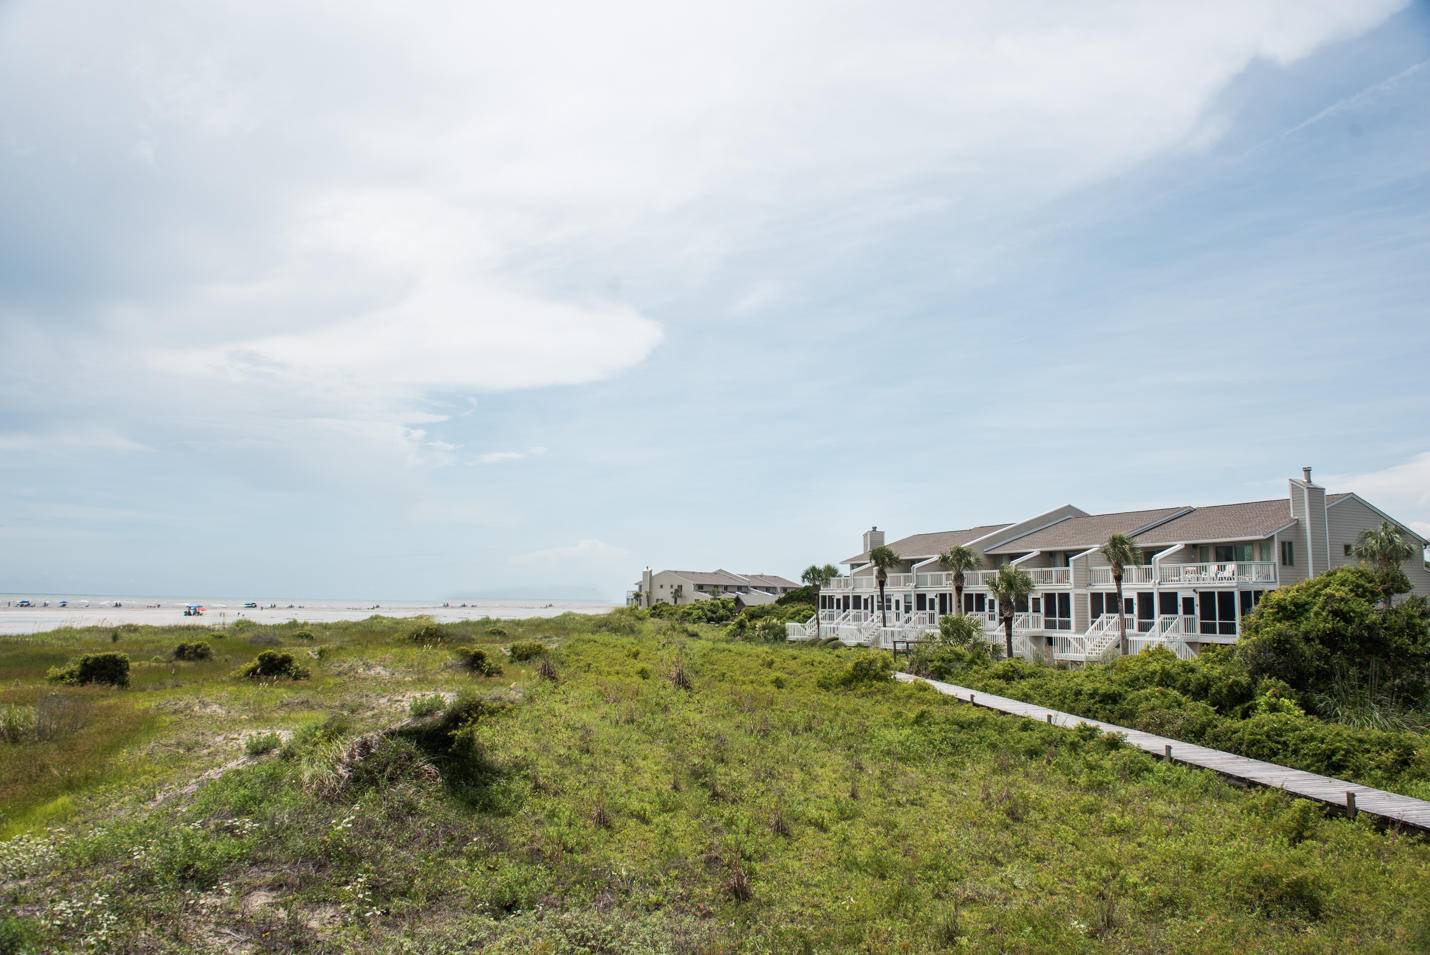 Beach Club Villas Homes For Sale - 66 Beach Club Villas, Isle of Palms, SC - 11